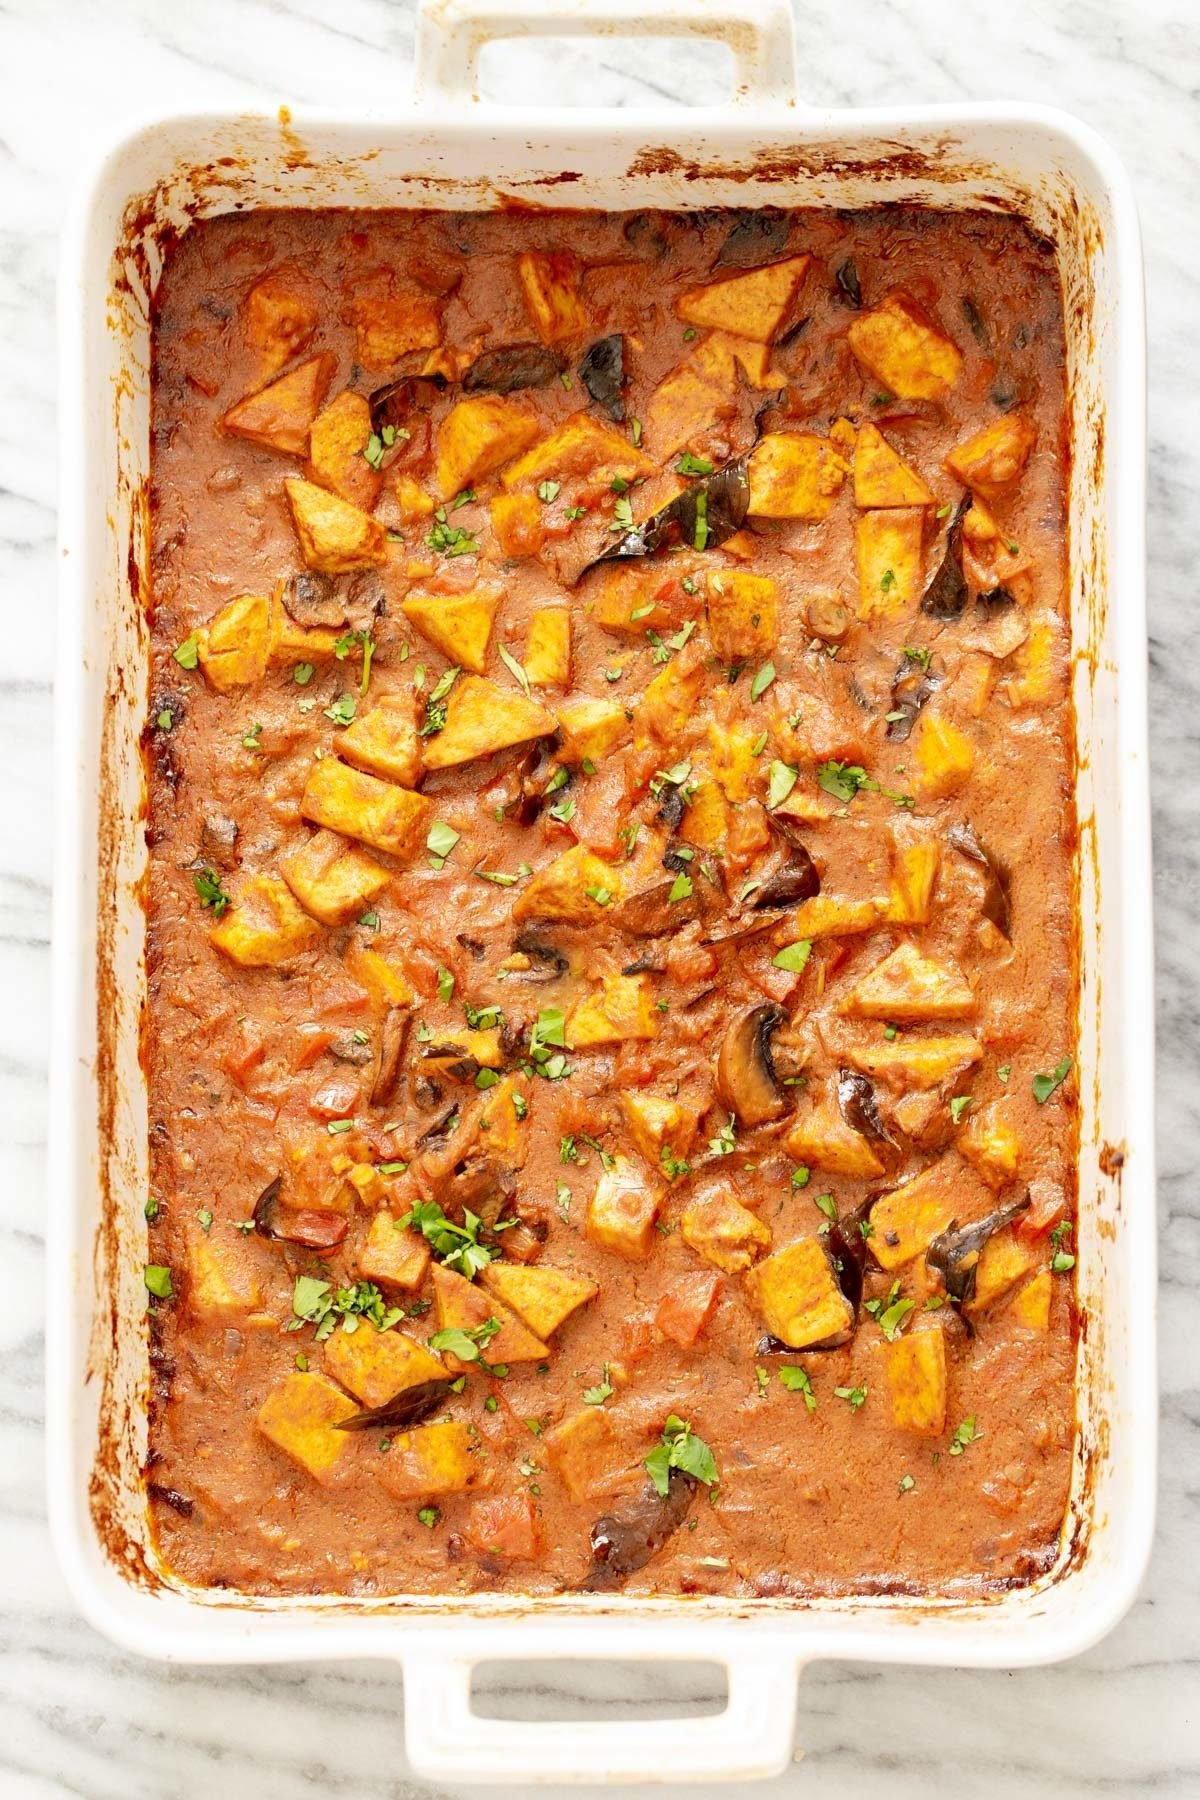 Indian Curry Tofu Casserole fresh out of the oven